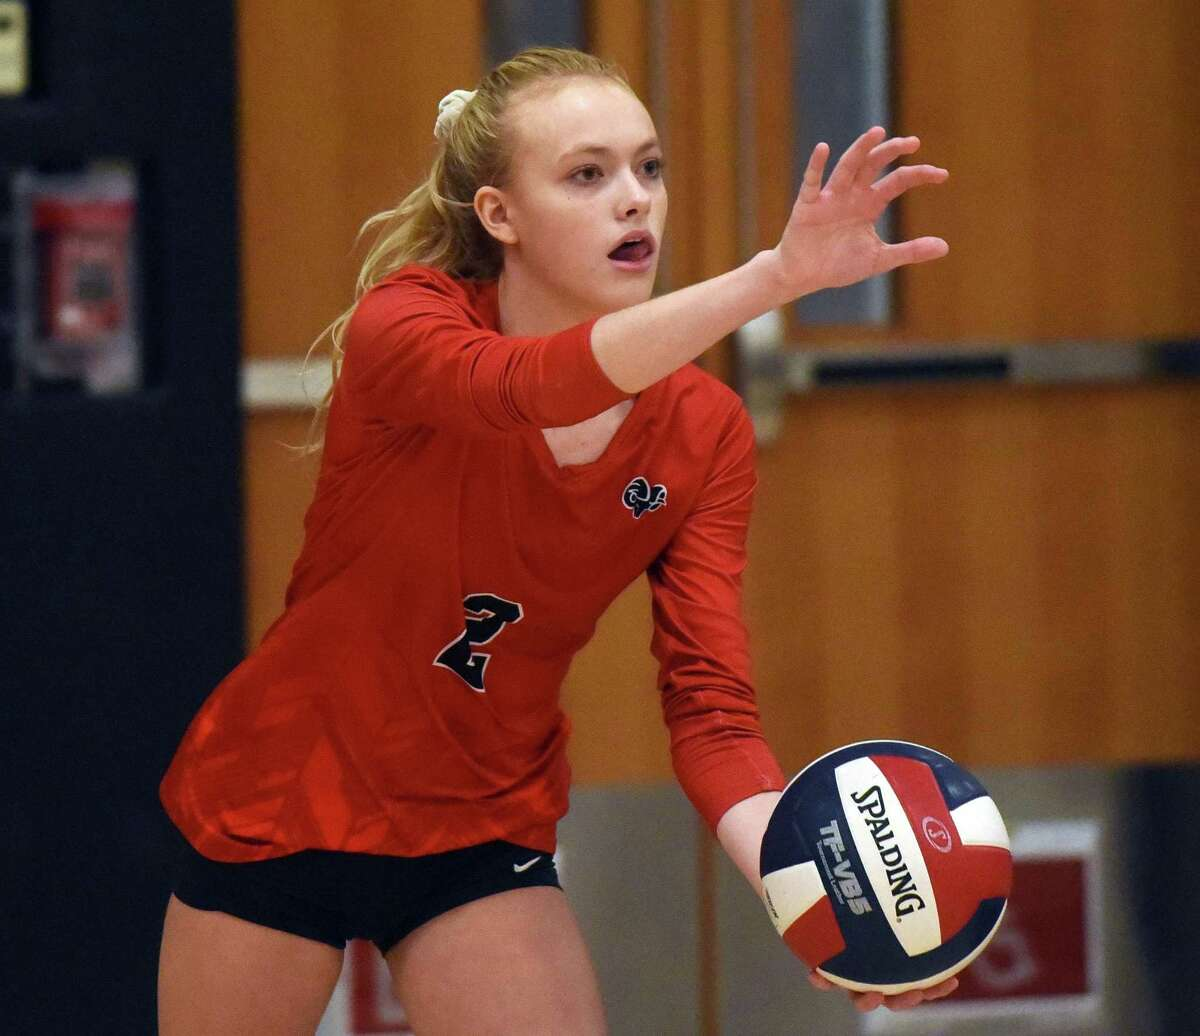 New Canaan's Elle Sneddon gets set to serve during an FCIAC girls volleyball quarterfinal game against Trumbull at Trumbull High School.